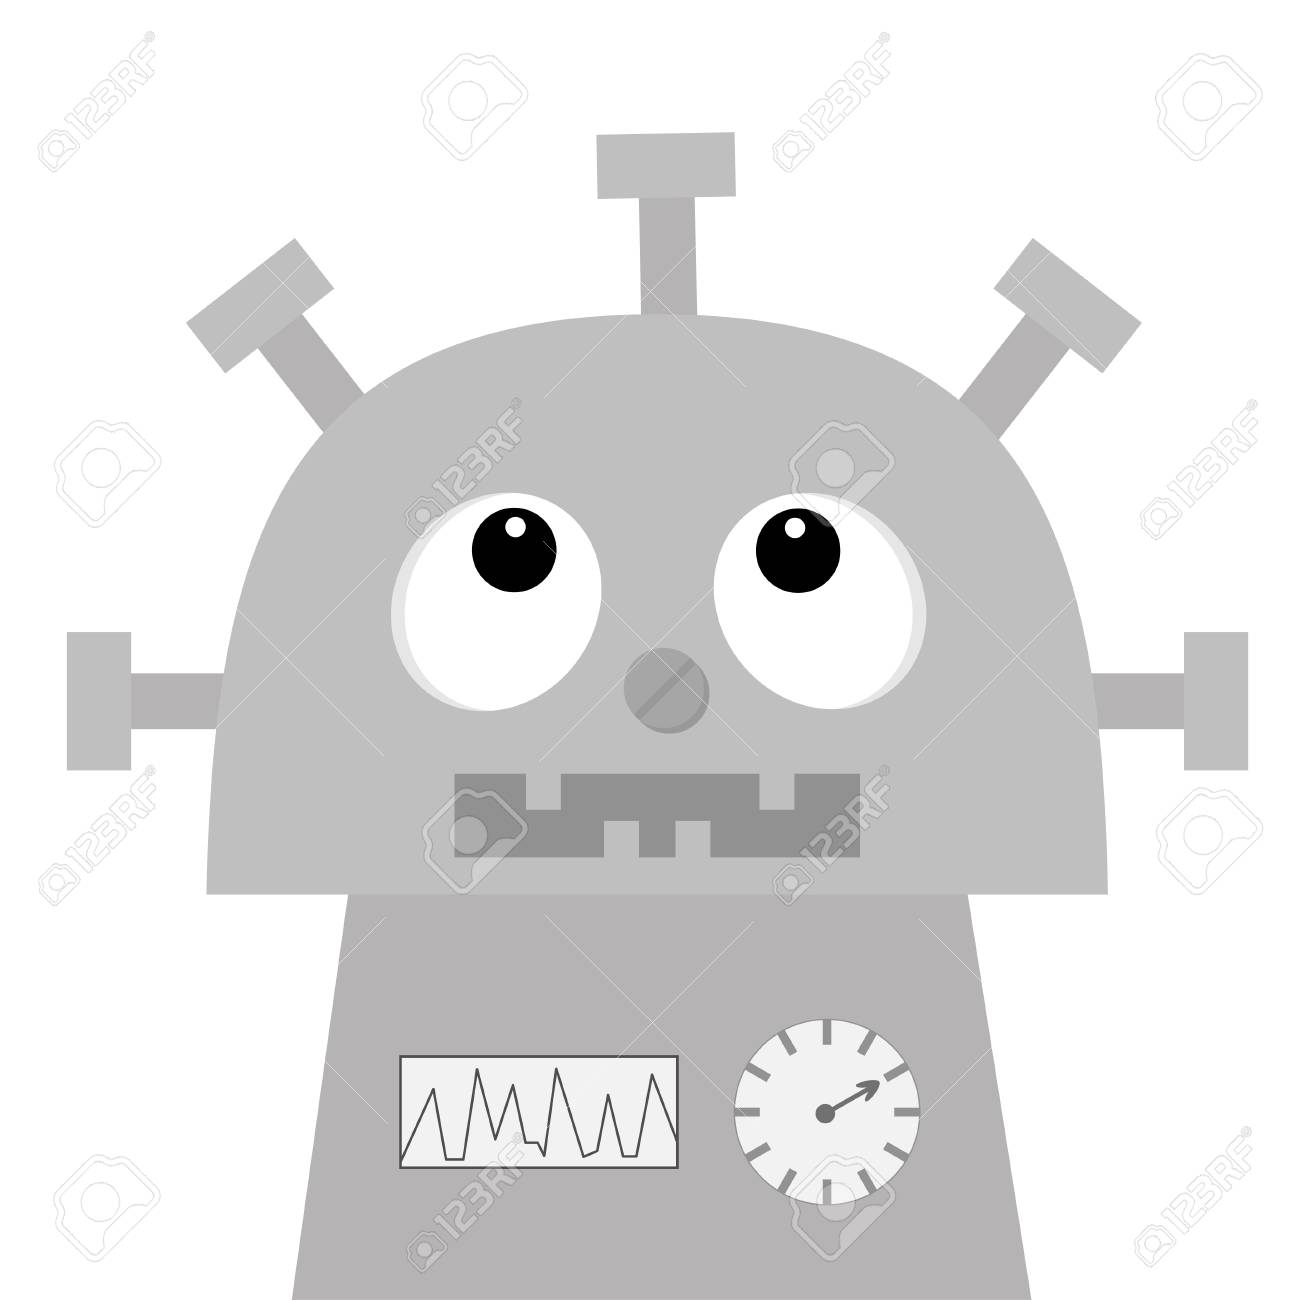 87835633 robot looking up screw nose clock heart diagram open mouth with tooth cute vintage cartoon character robot looking up screw nose, clock heart, diagram, open mouth